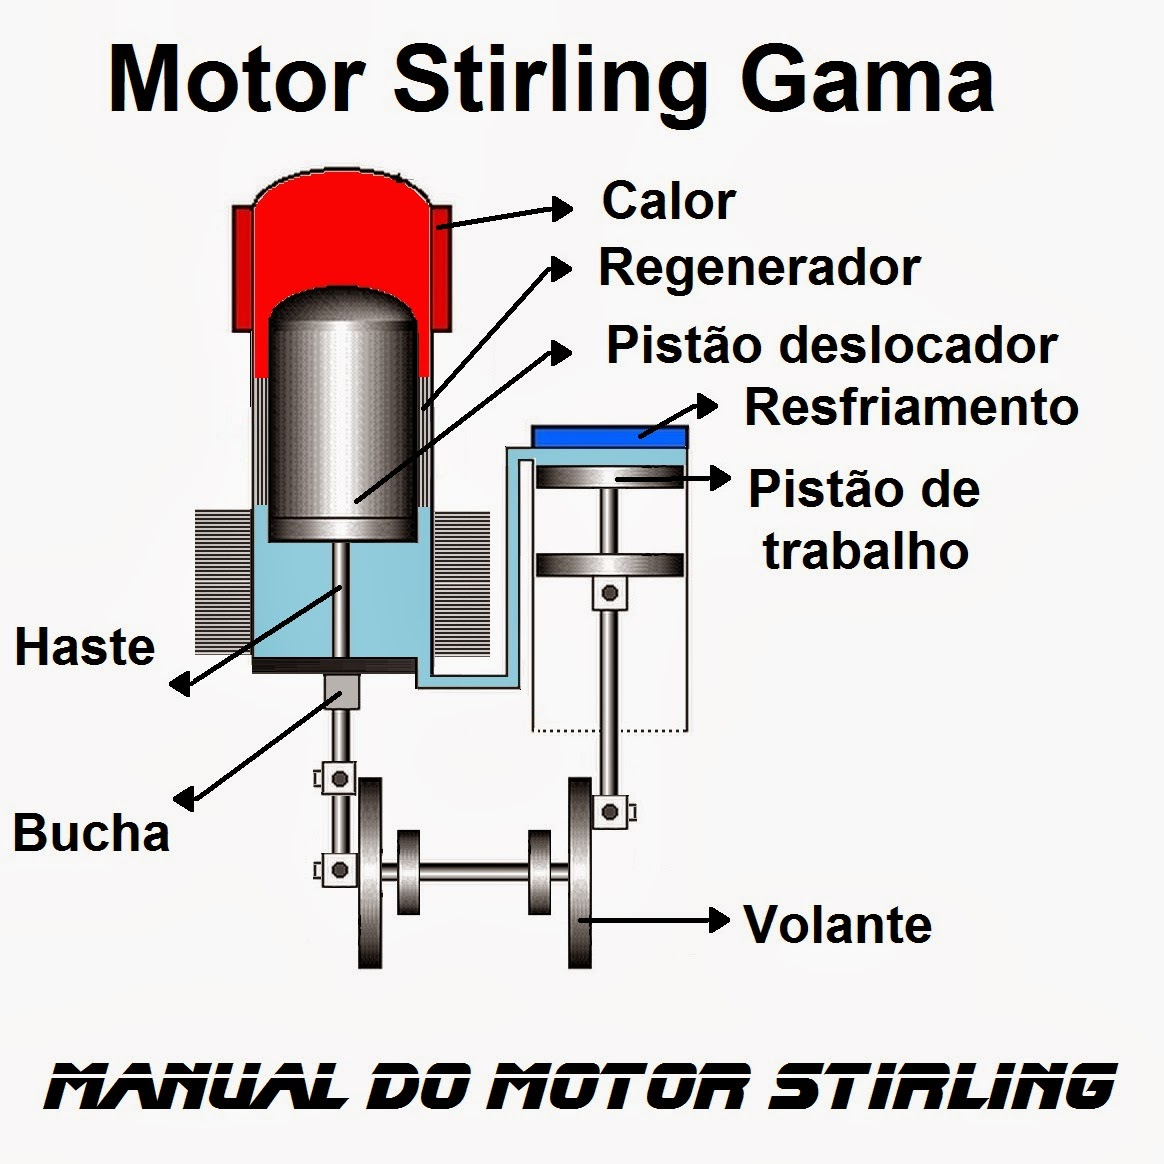 Manual do motor Stilring Gama, What is a Gamma Stirling engine